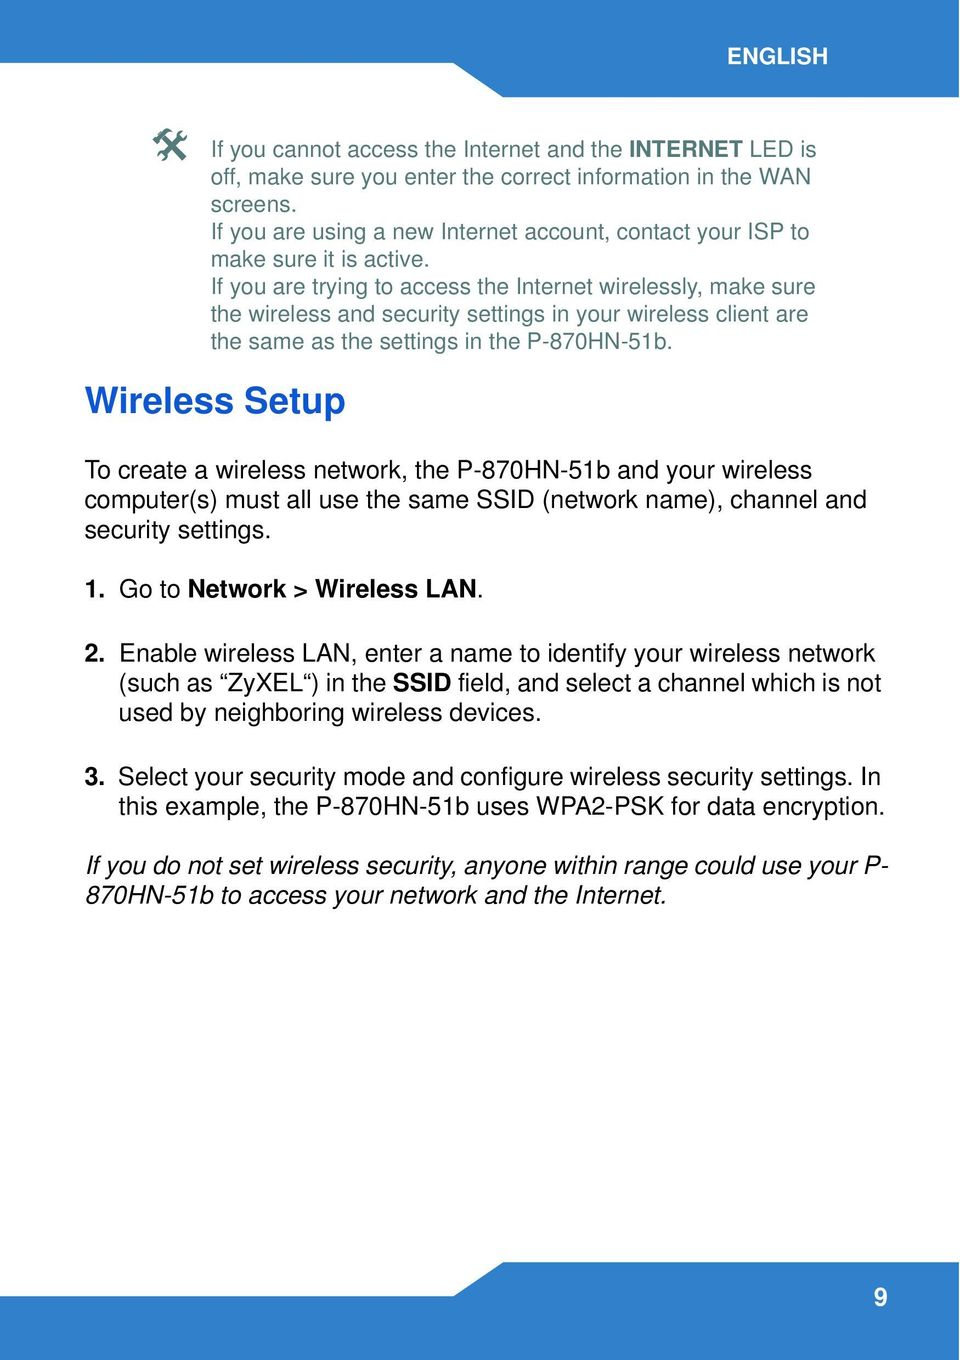 If you are trying to access the Internet wirelessly, make sure the wireless and security settings in your wireless client are the same as the settings in the P-870HN-51b.